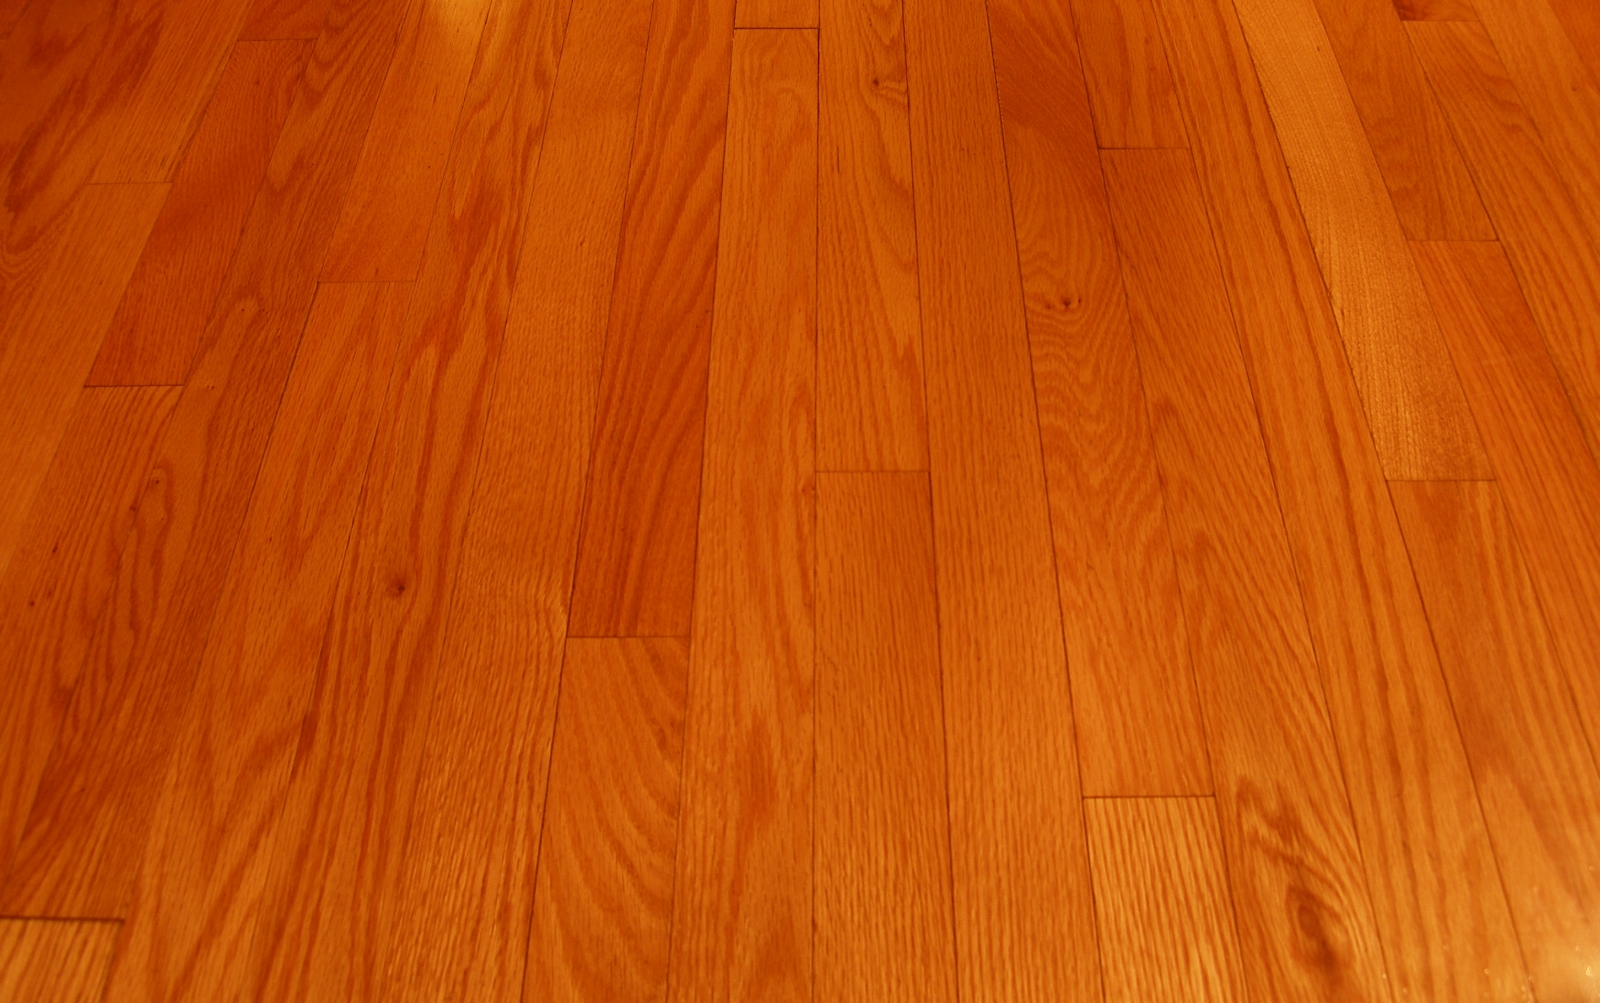 Unique wood floors choosing between solid vs engineered for Hardwood plank flooring